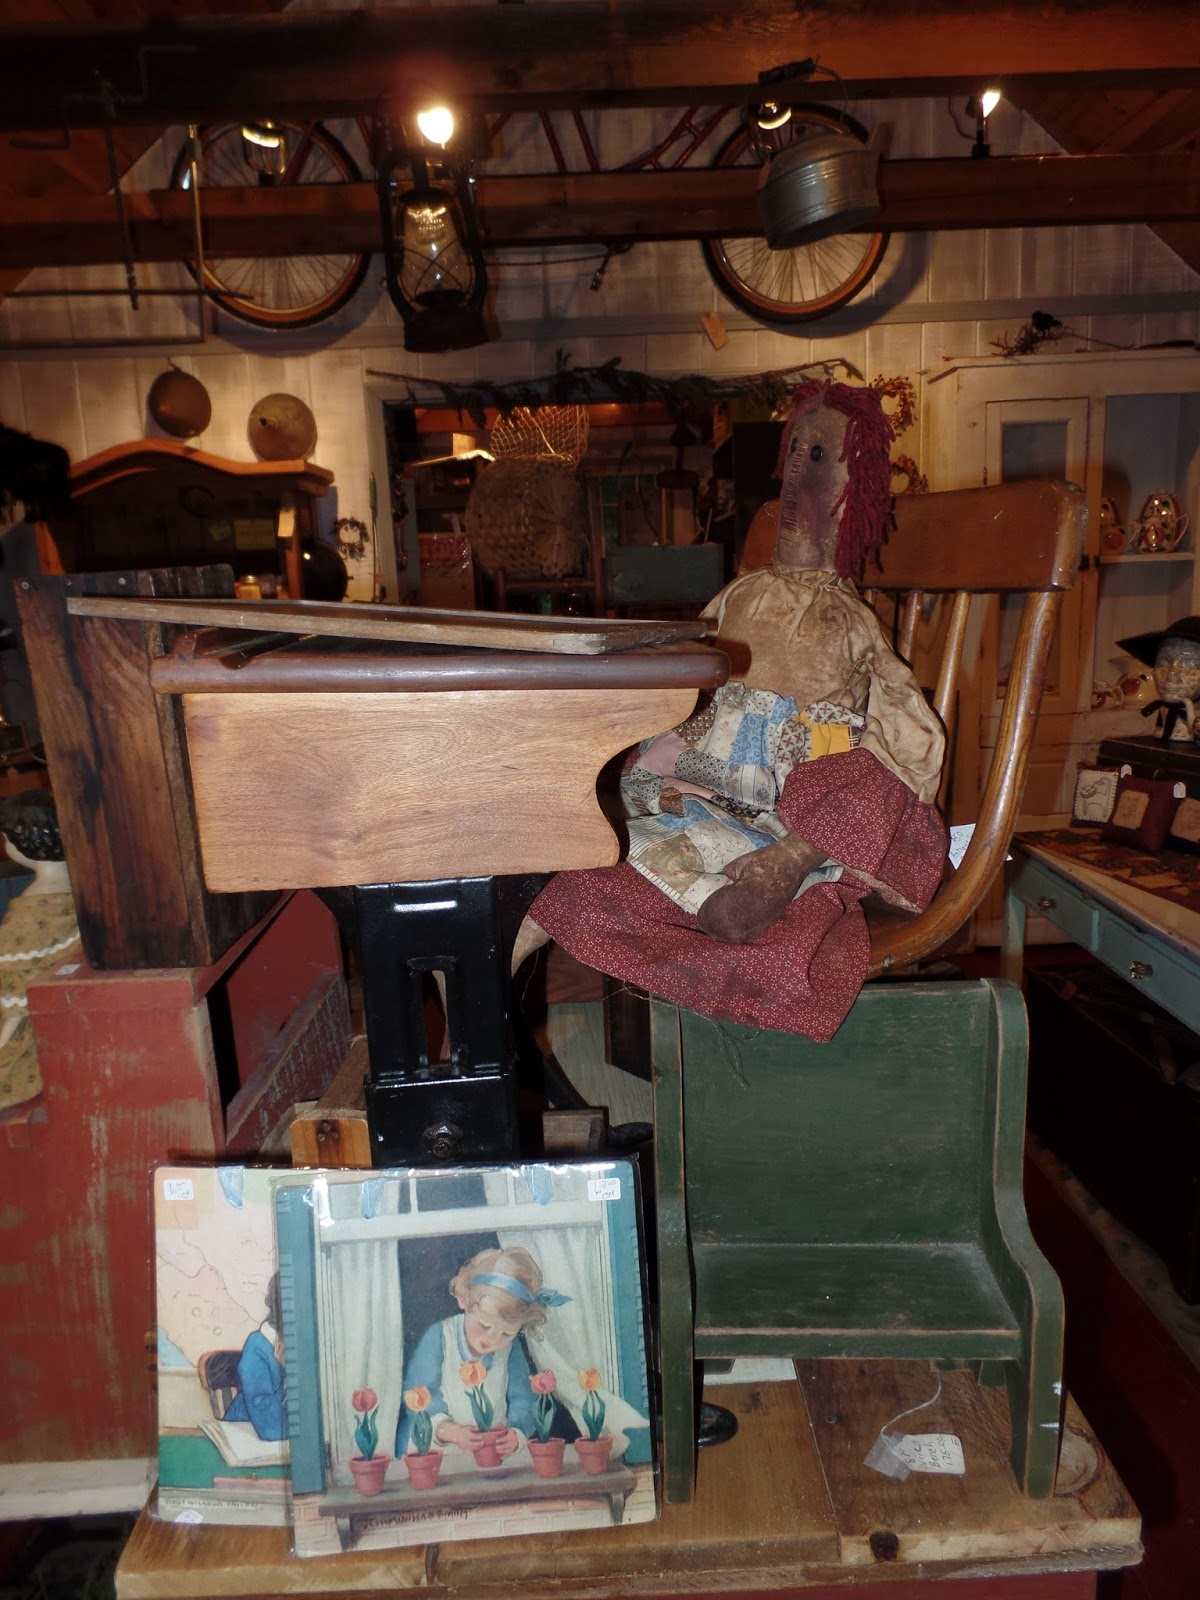 Wonderful image of Log Cabin Antiques & Gifts: Sneak peek of Carol's wonderful primitive  with #683A2B color and 1200x1600 pixels